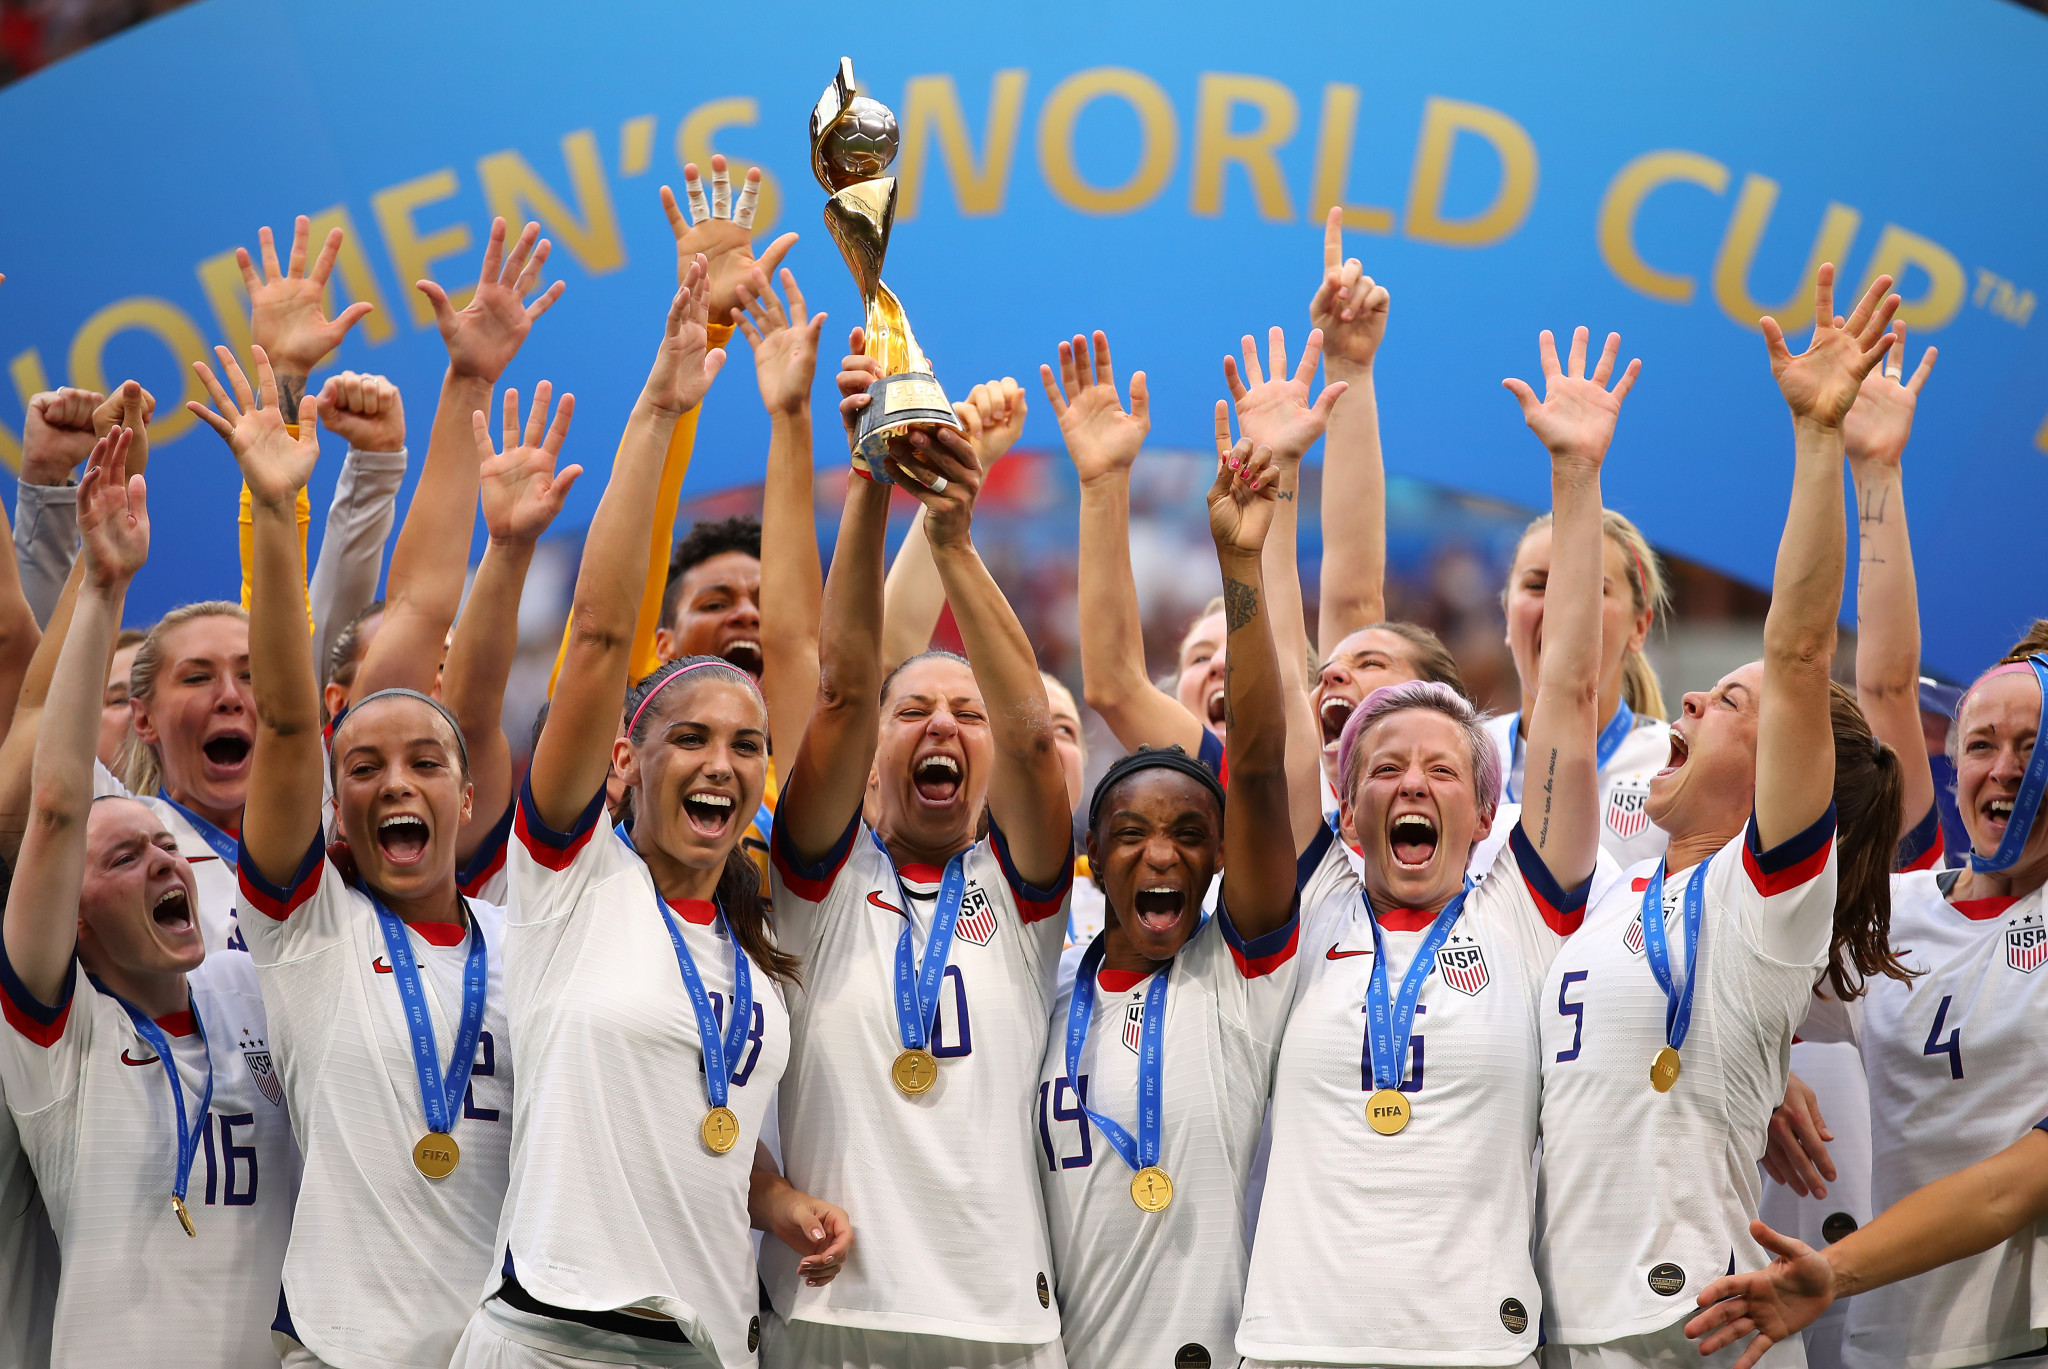 UEFA and European women's leagues join forces to criticise FIFA's plans for biennial World Cups